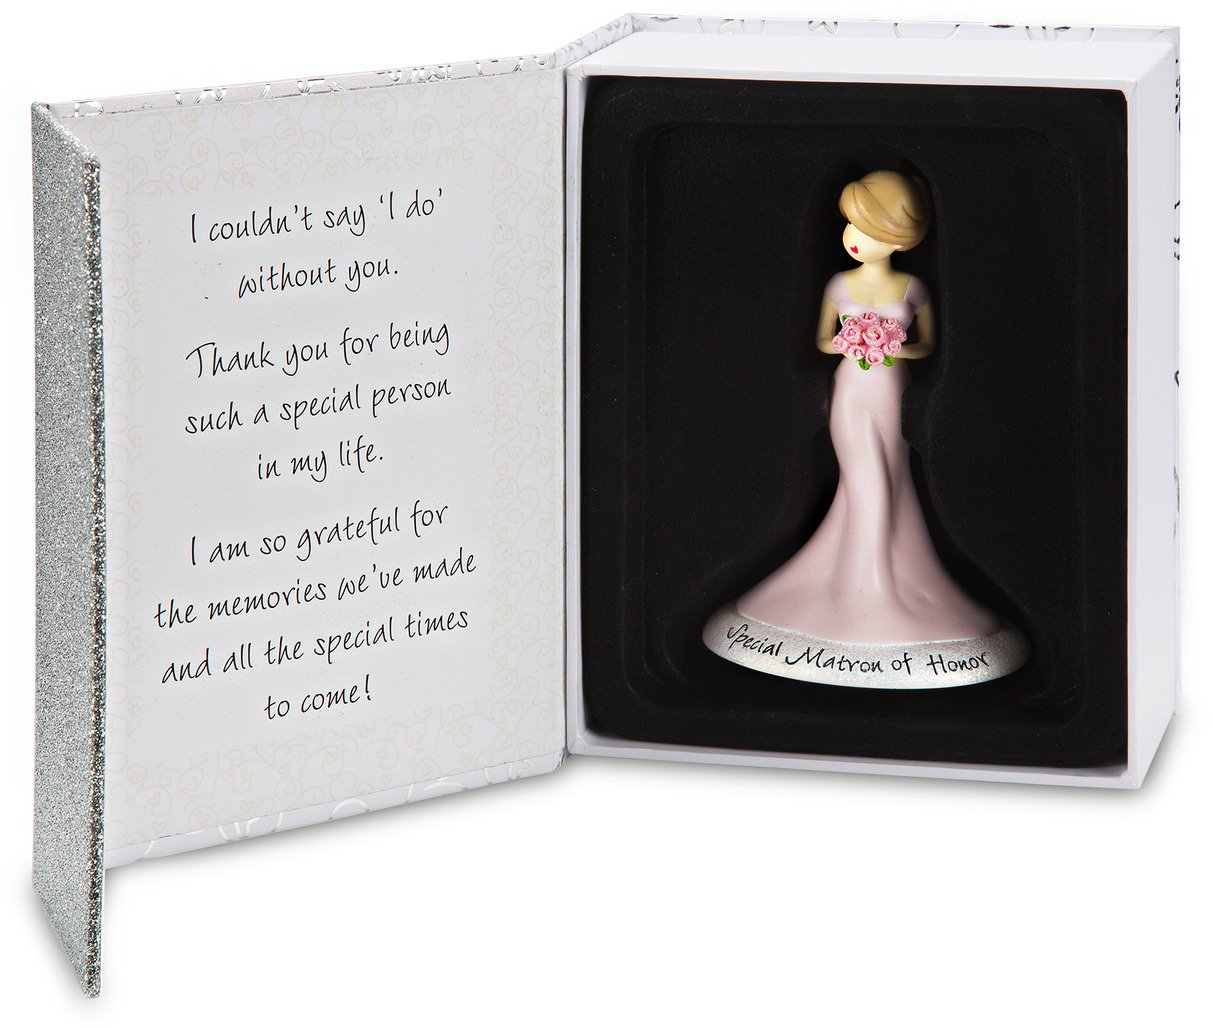 Pavilion Gift Company Philosophies Matron of Honor Gift Christmas Ornament, 4.5''